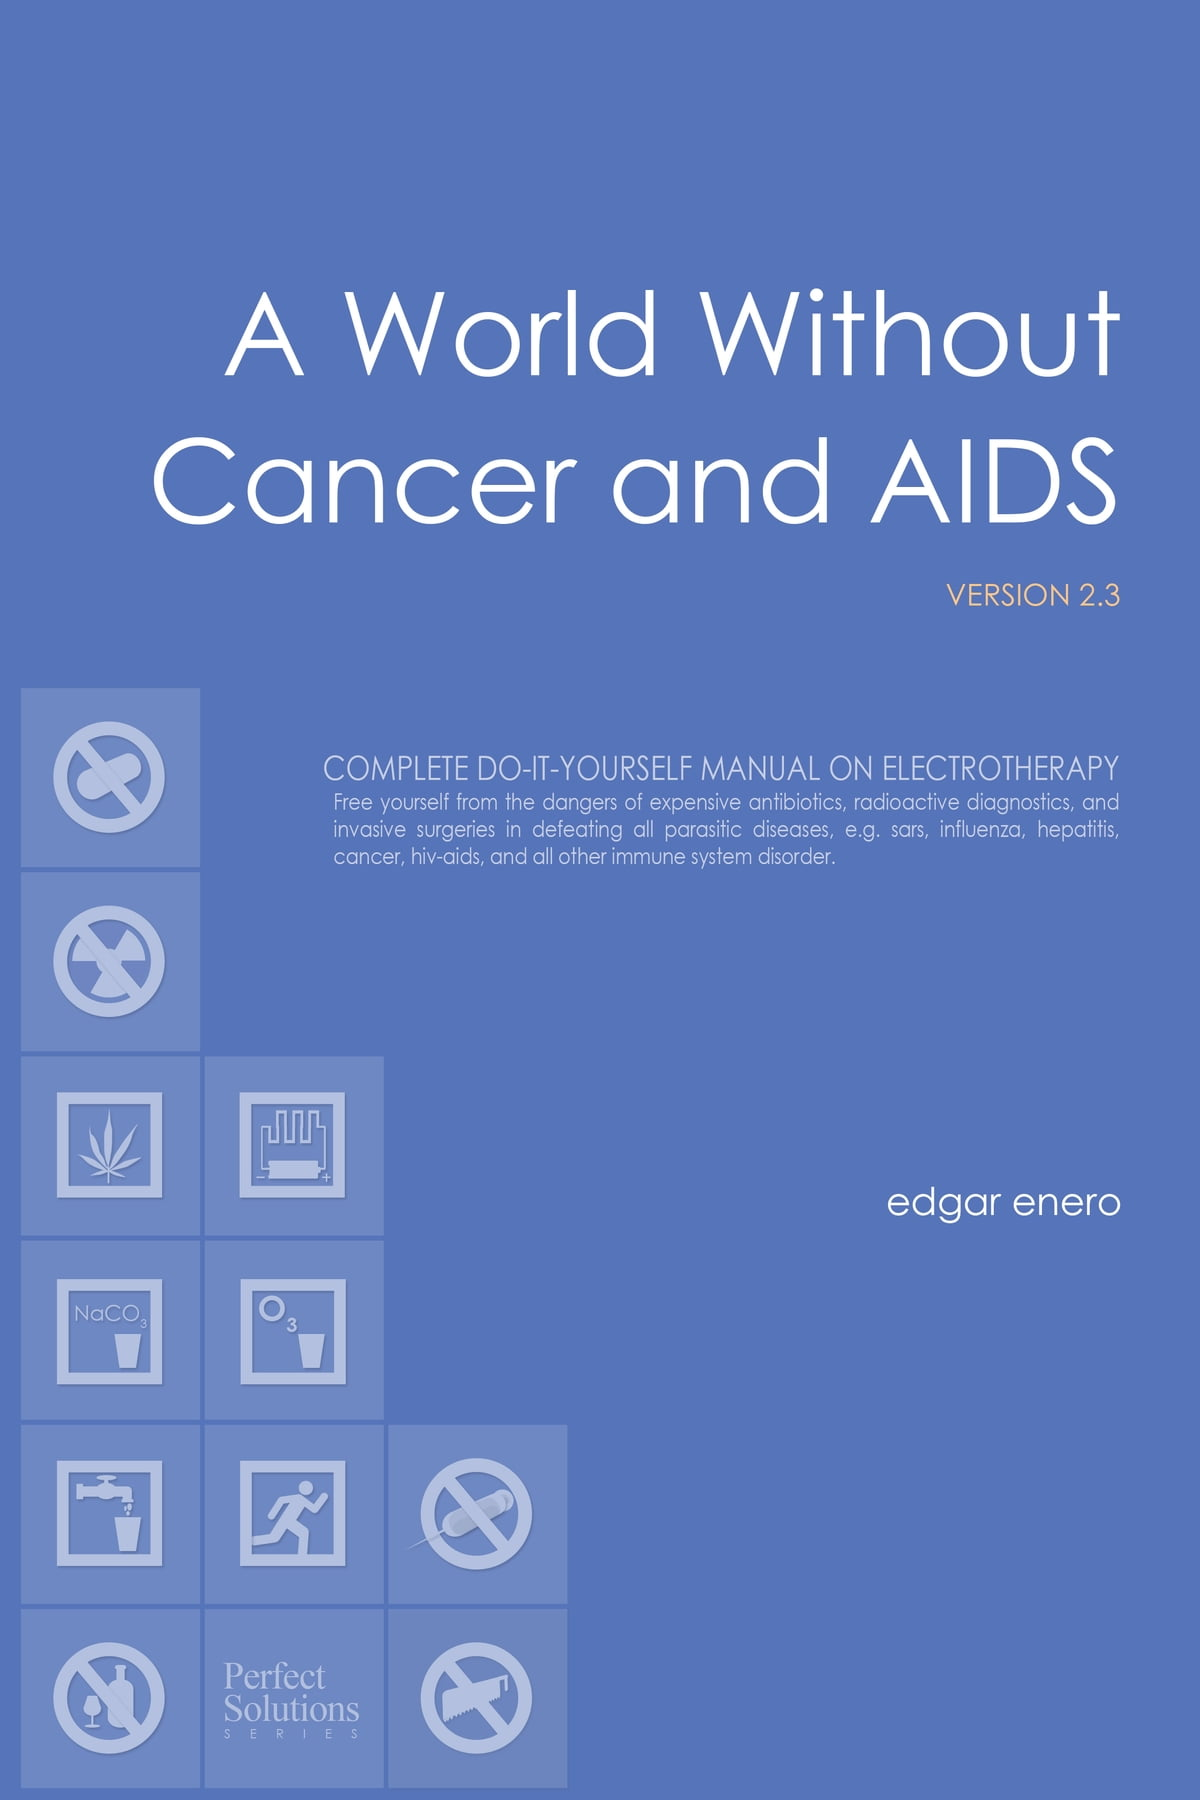 A World Without Cancer And AIDS EBook By Edgar Enero